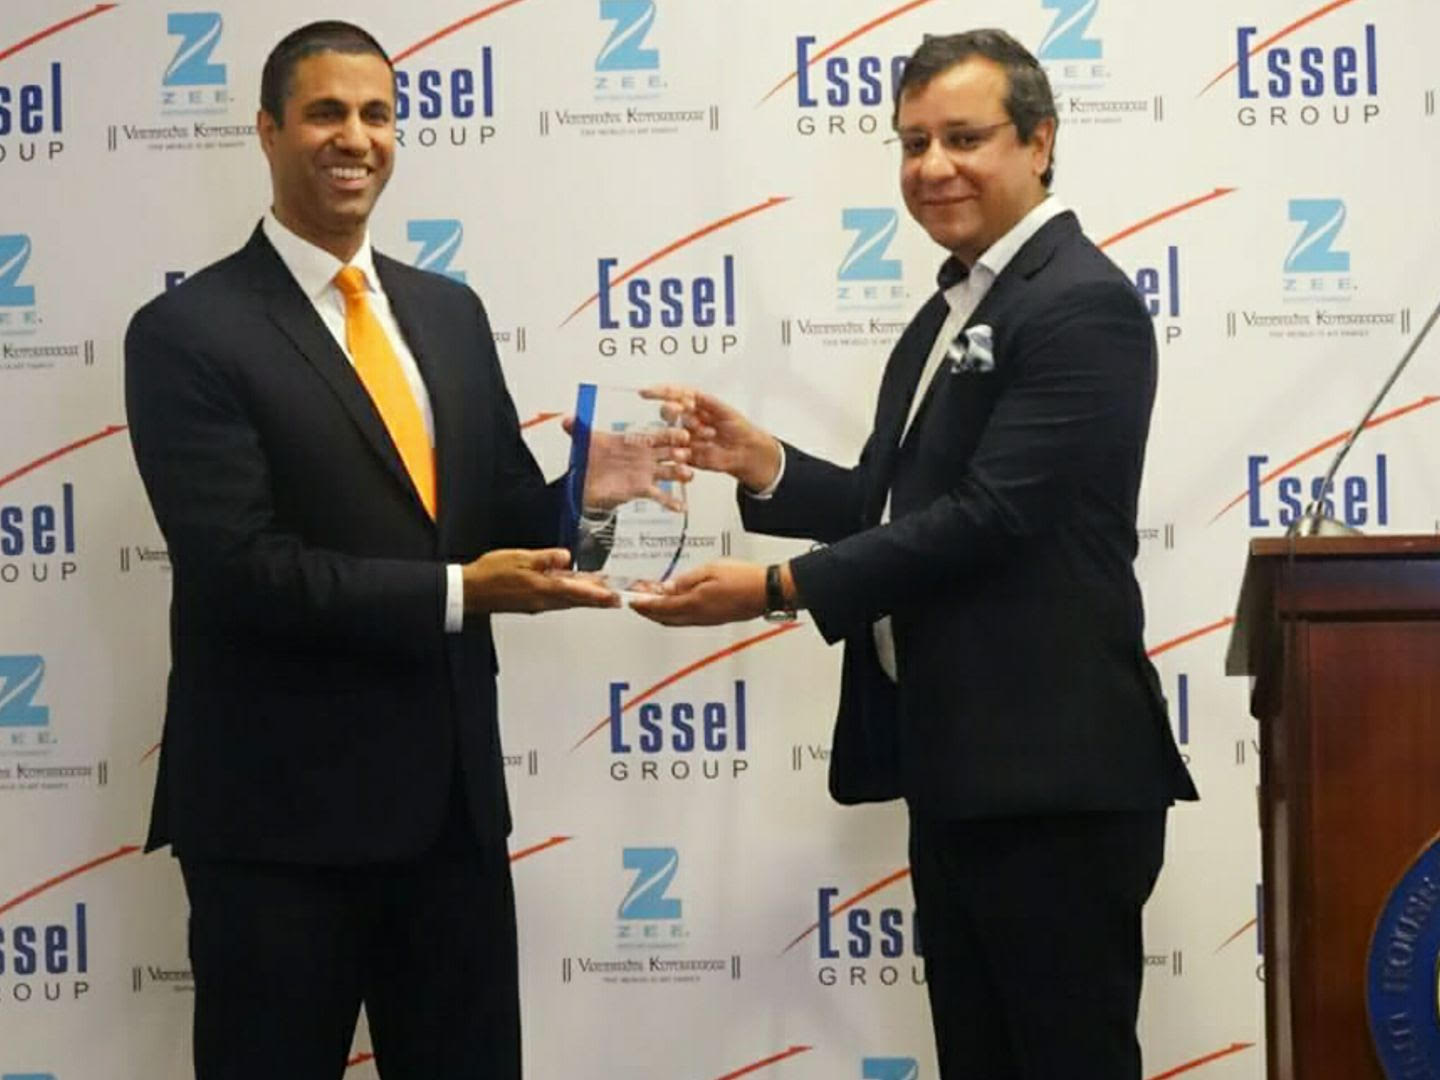 Ajit Pai getting the inaugural Zee award